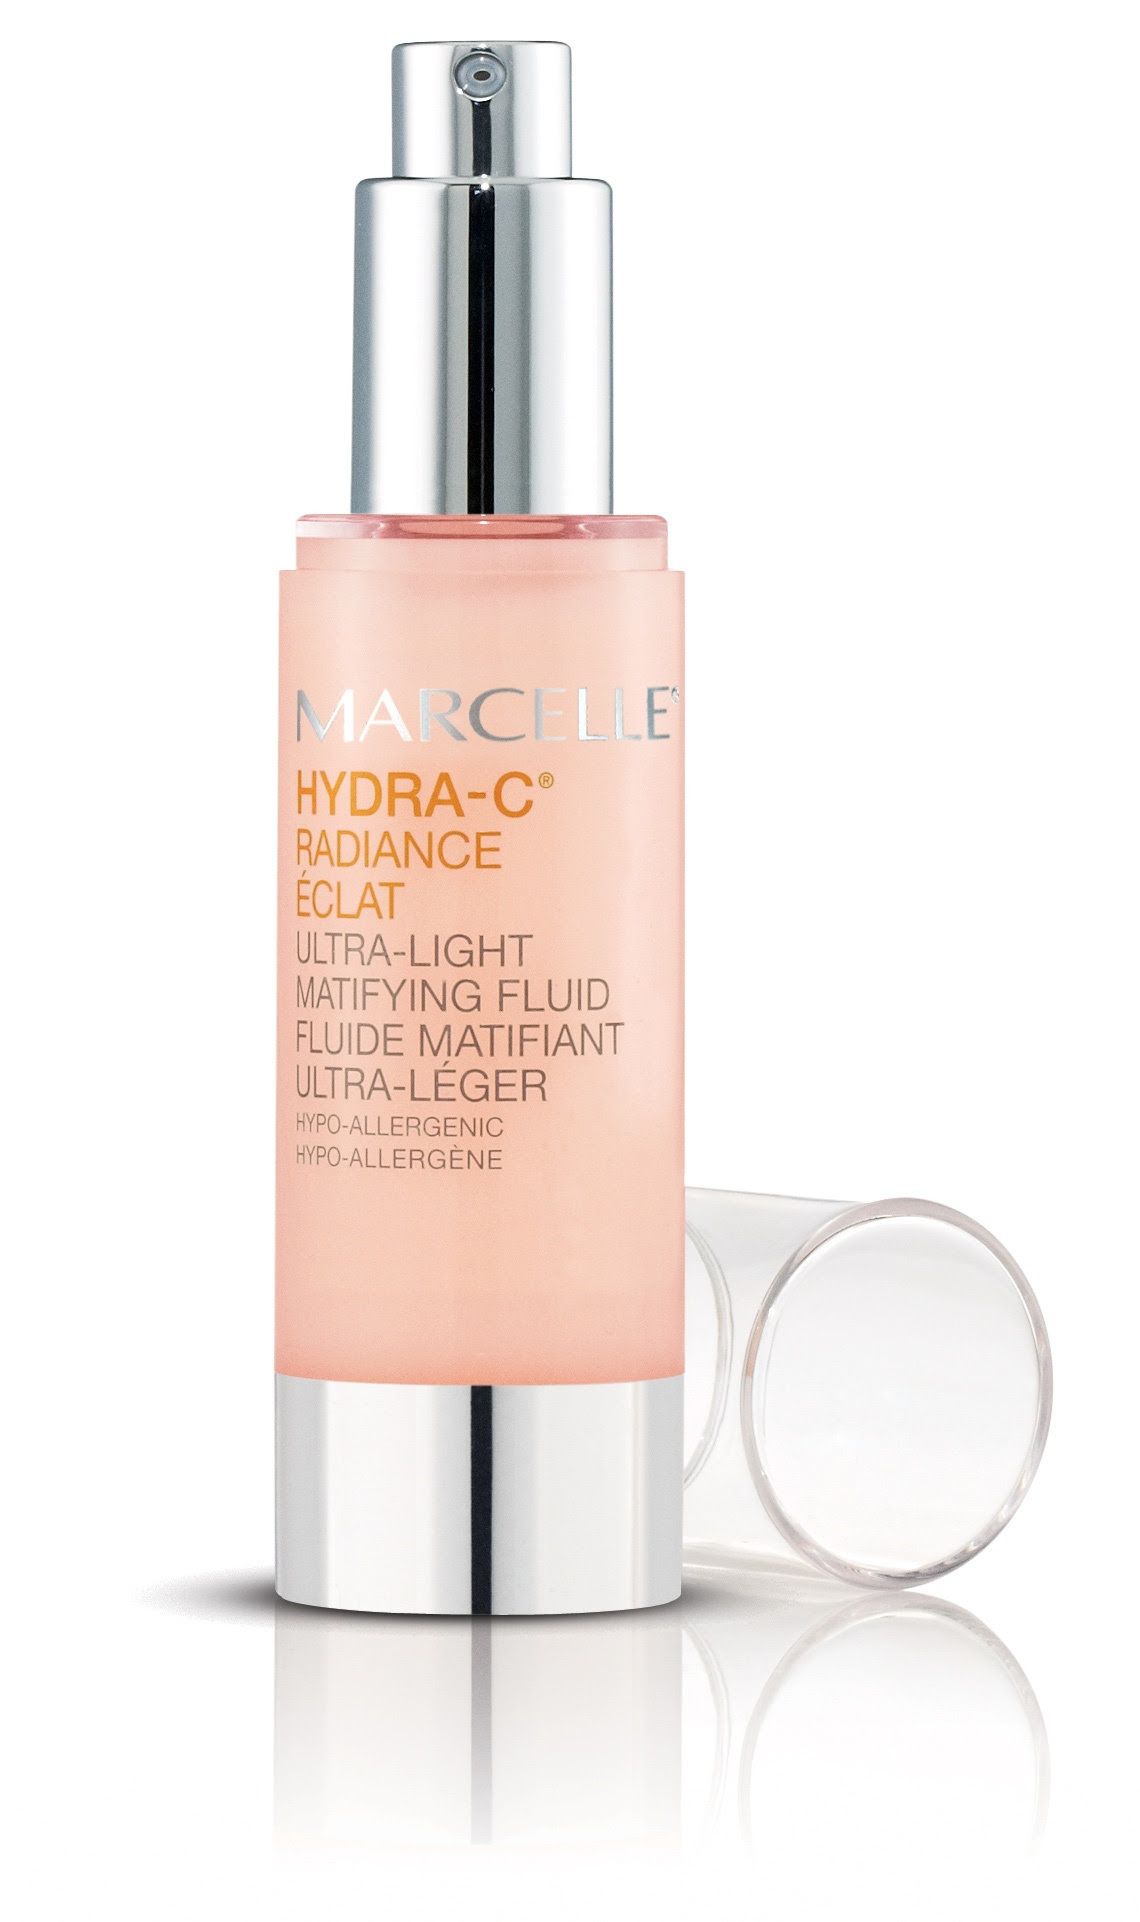 Hydra-C Ultra-Light Matifying Fluid